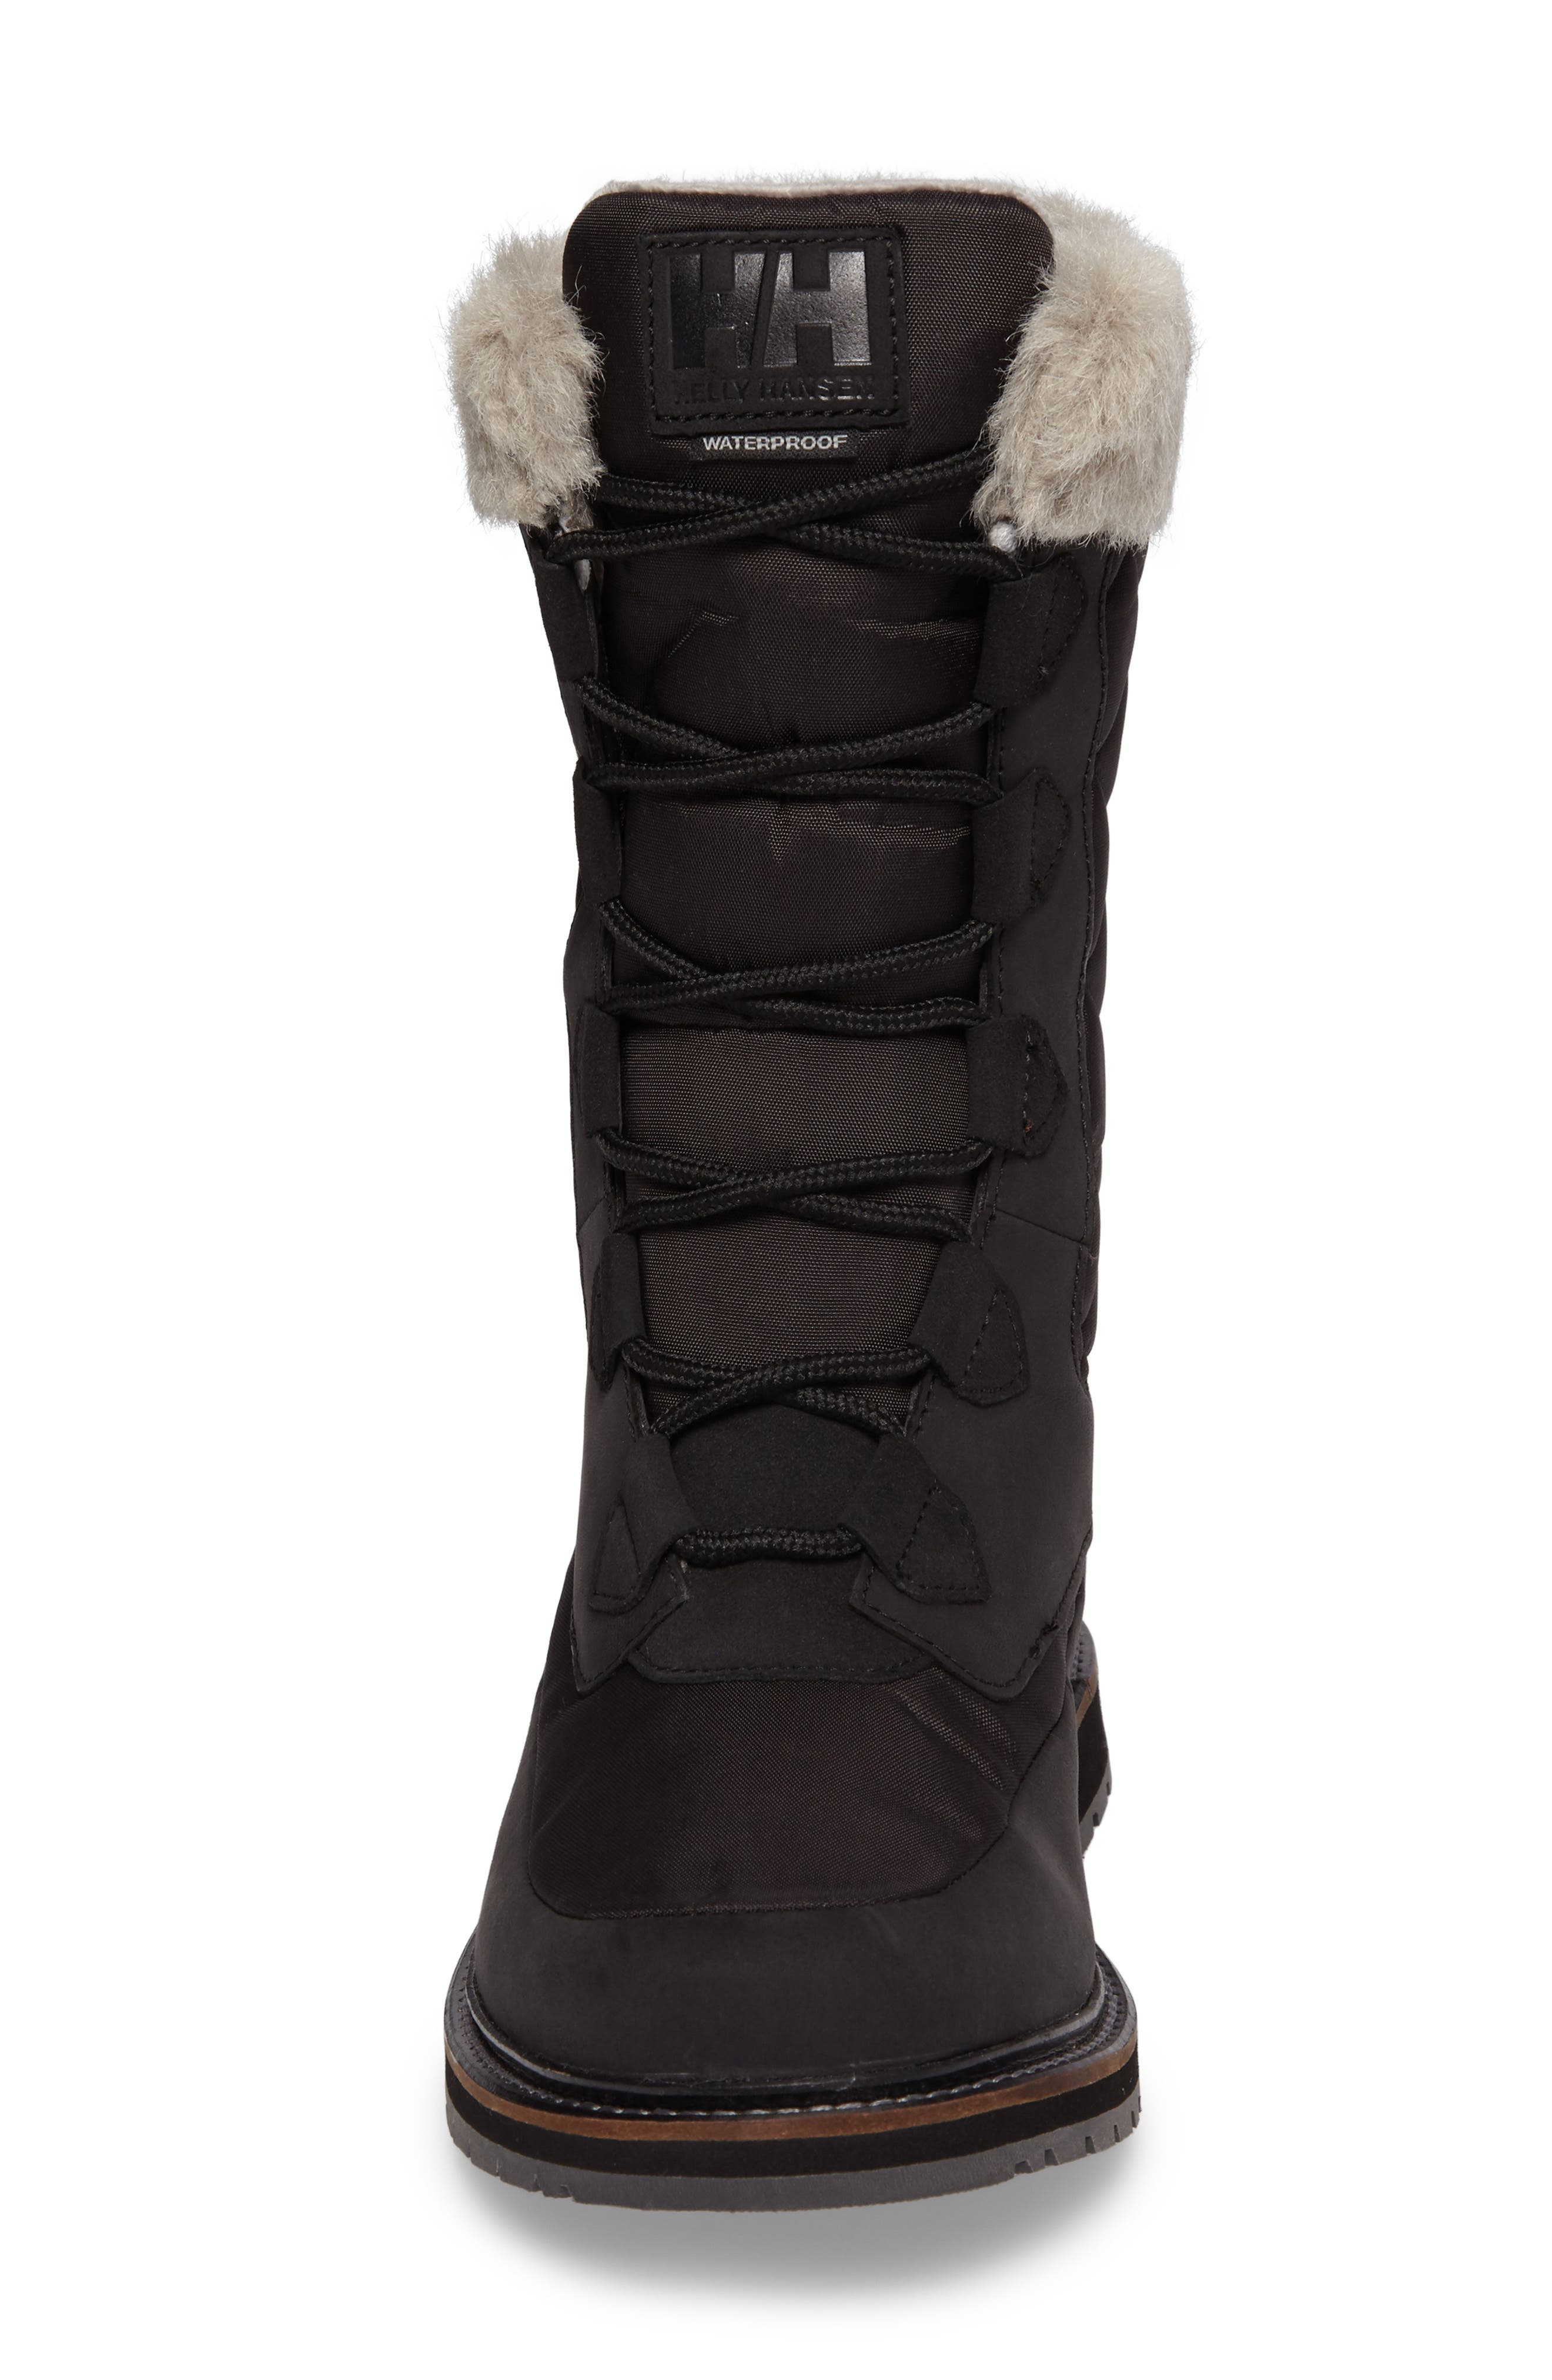 Arosa Waterproof Boot with Faux Fur Trim,                             Alternate thumbnail 4, color,                             001